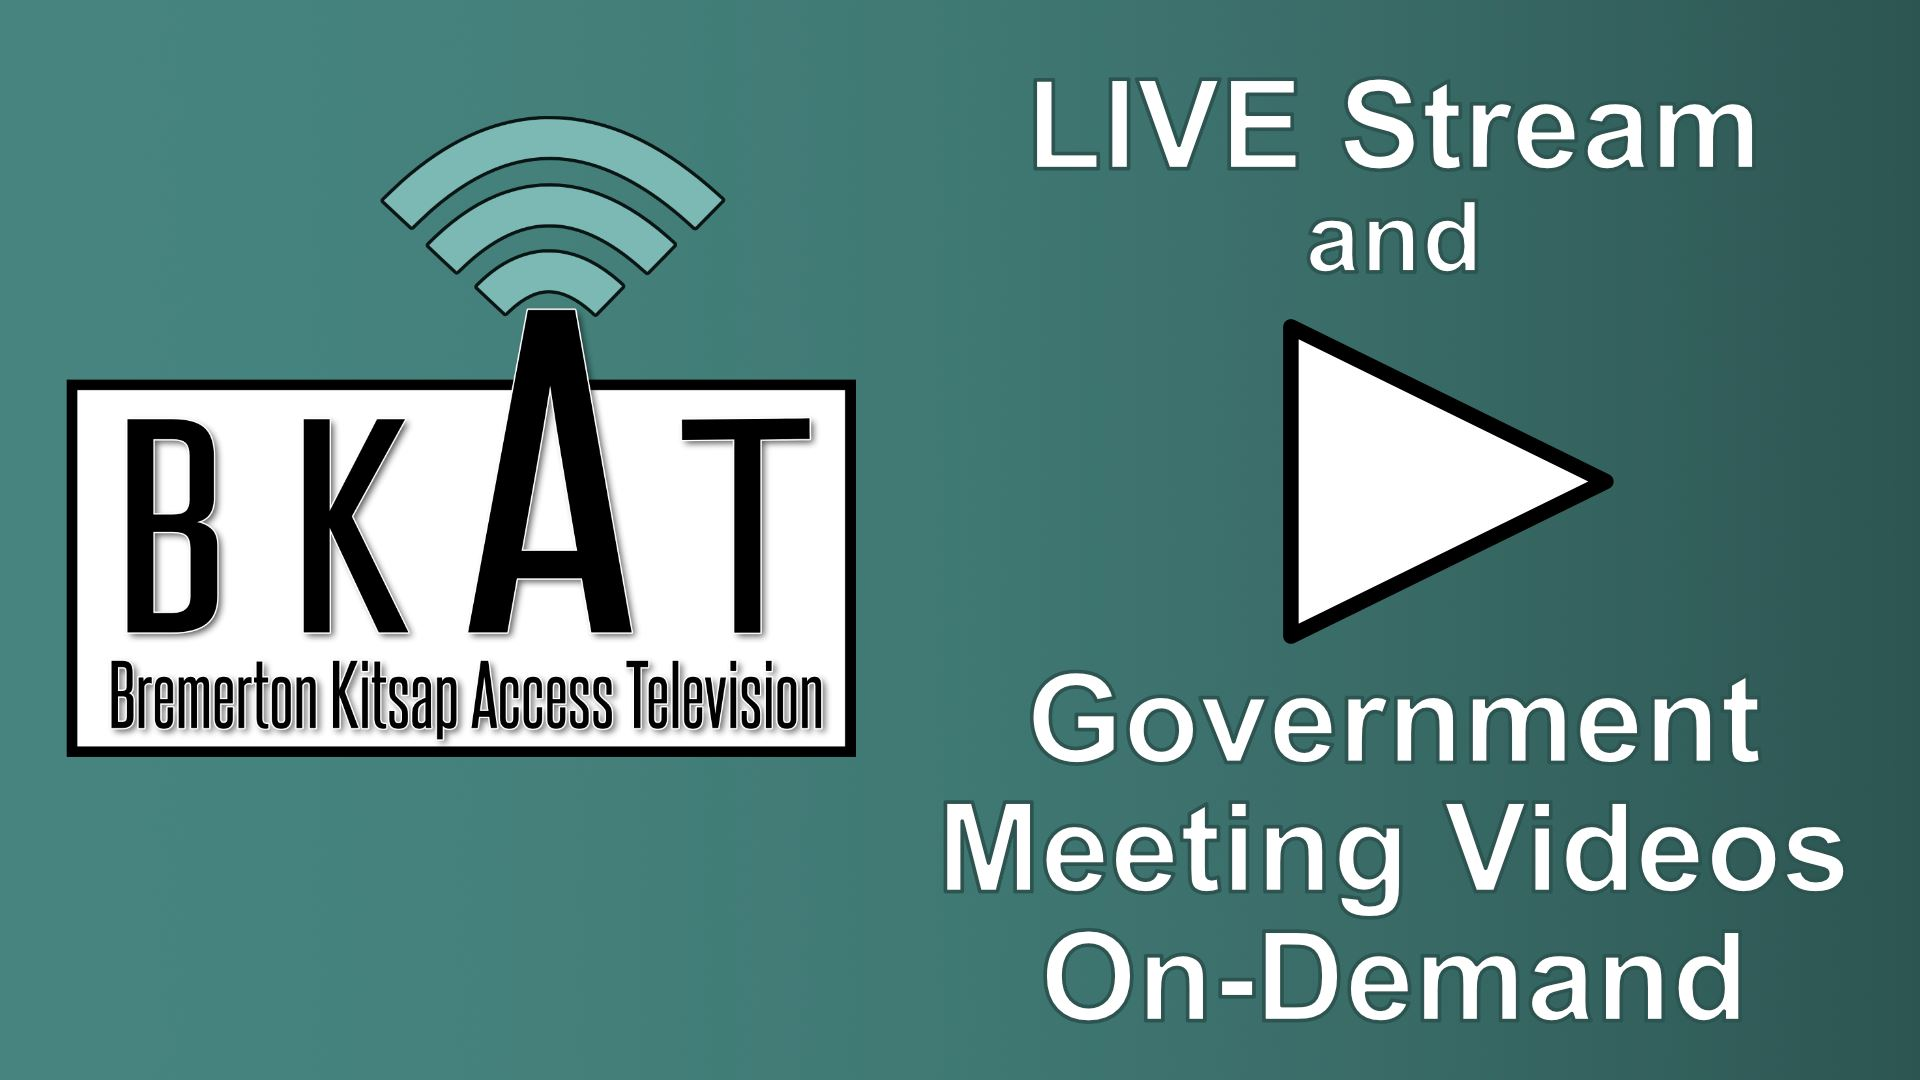 BKAT Livestream and Video Archive